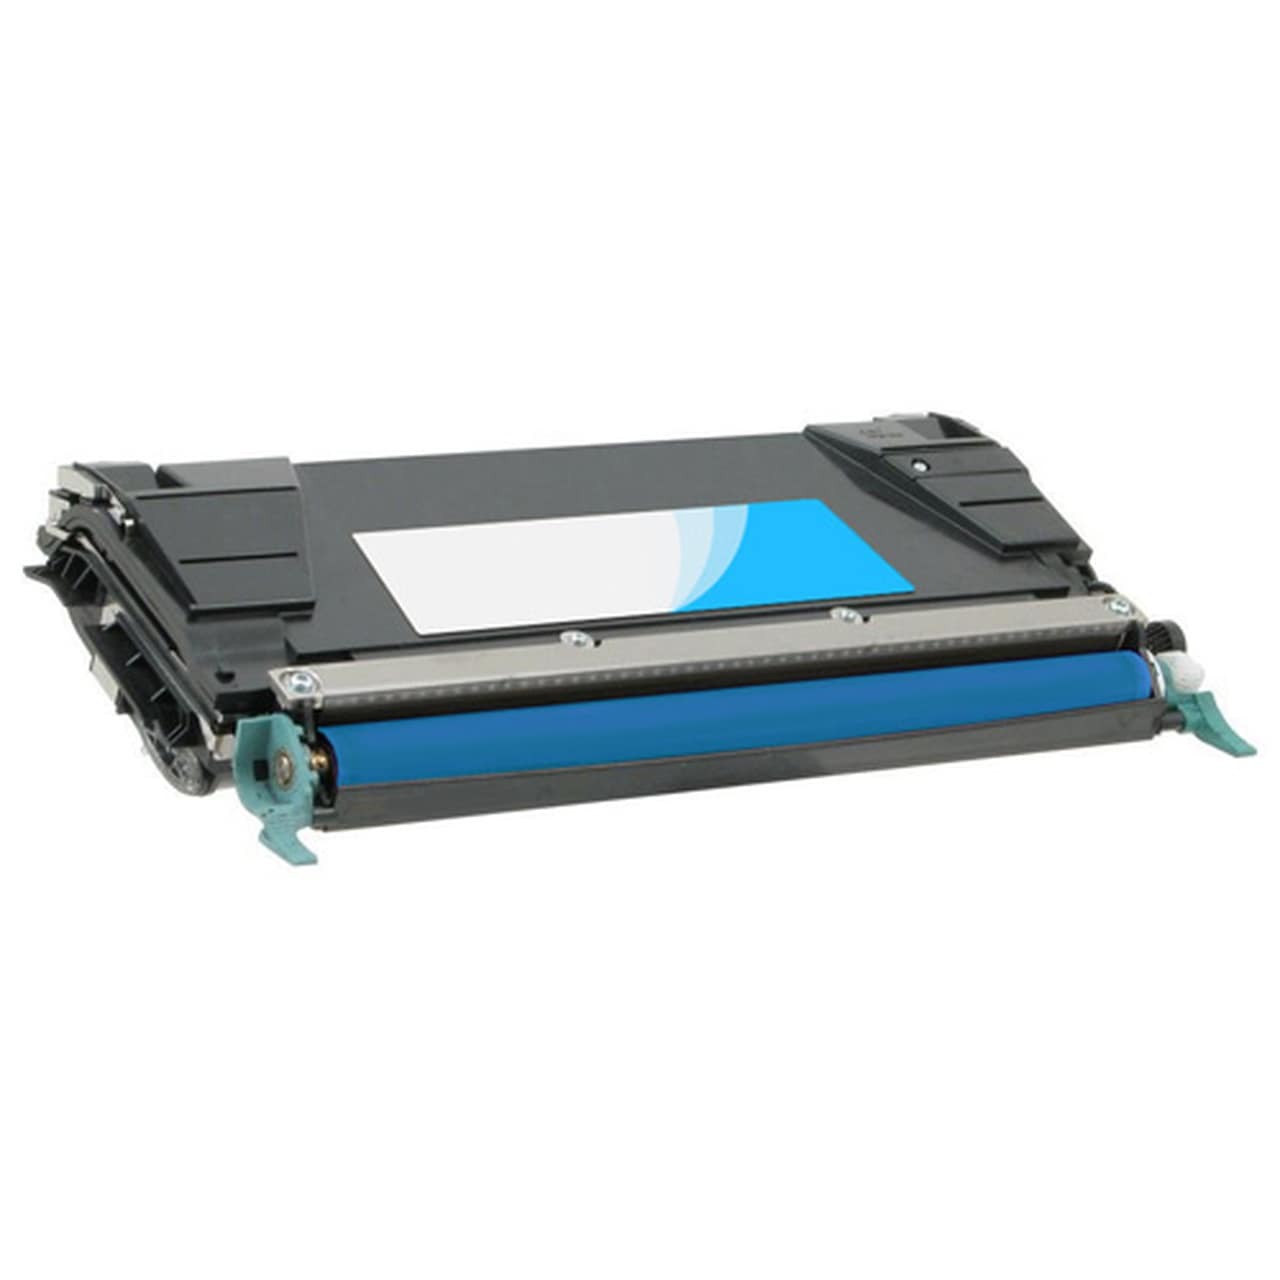 C746A1CG Toner Cartridge - Lexmark Remanufactured (Cyan)